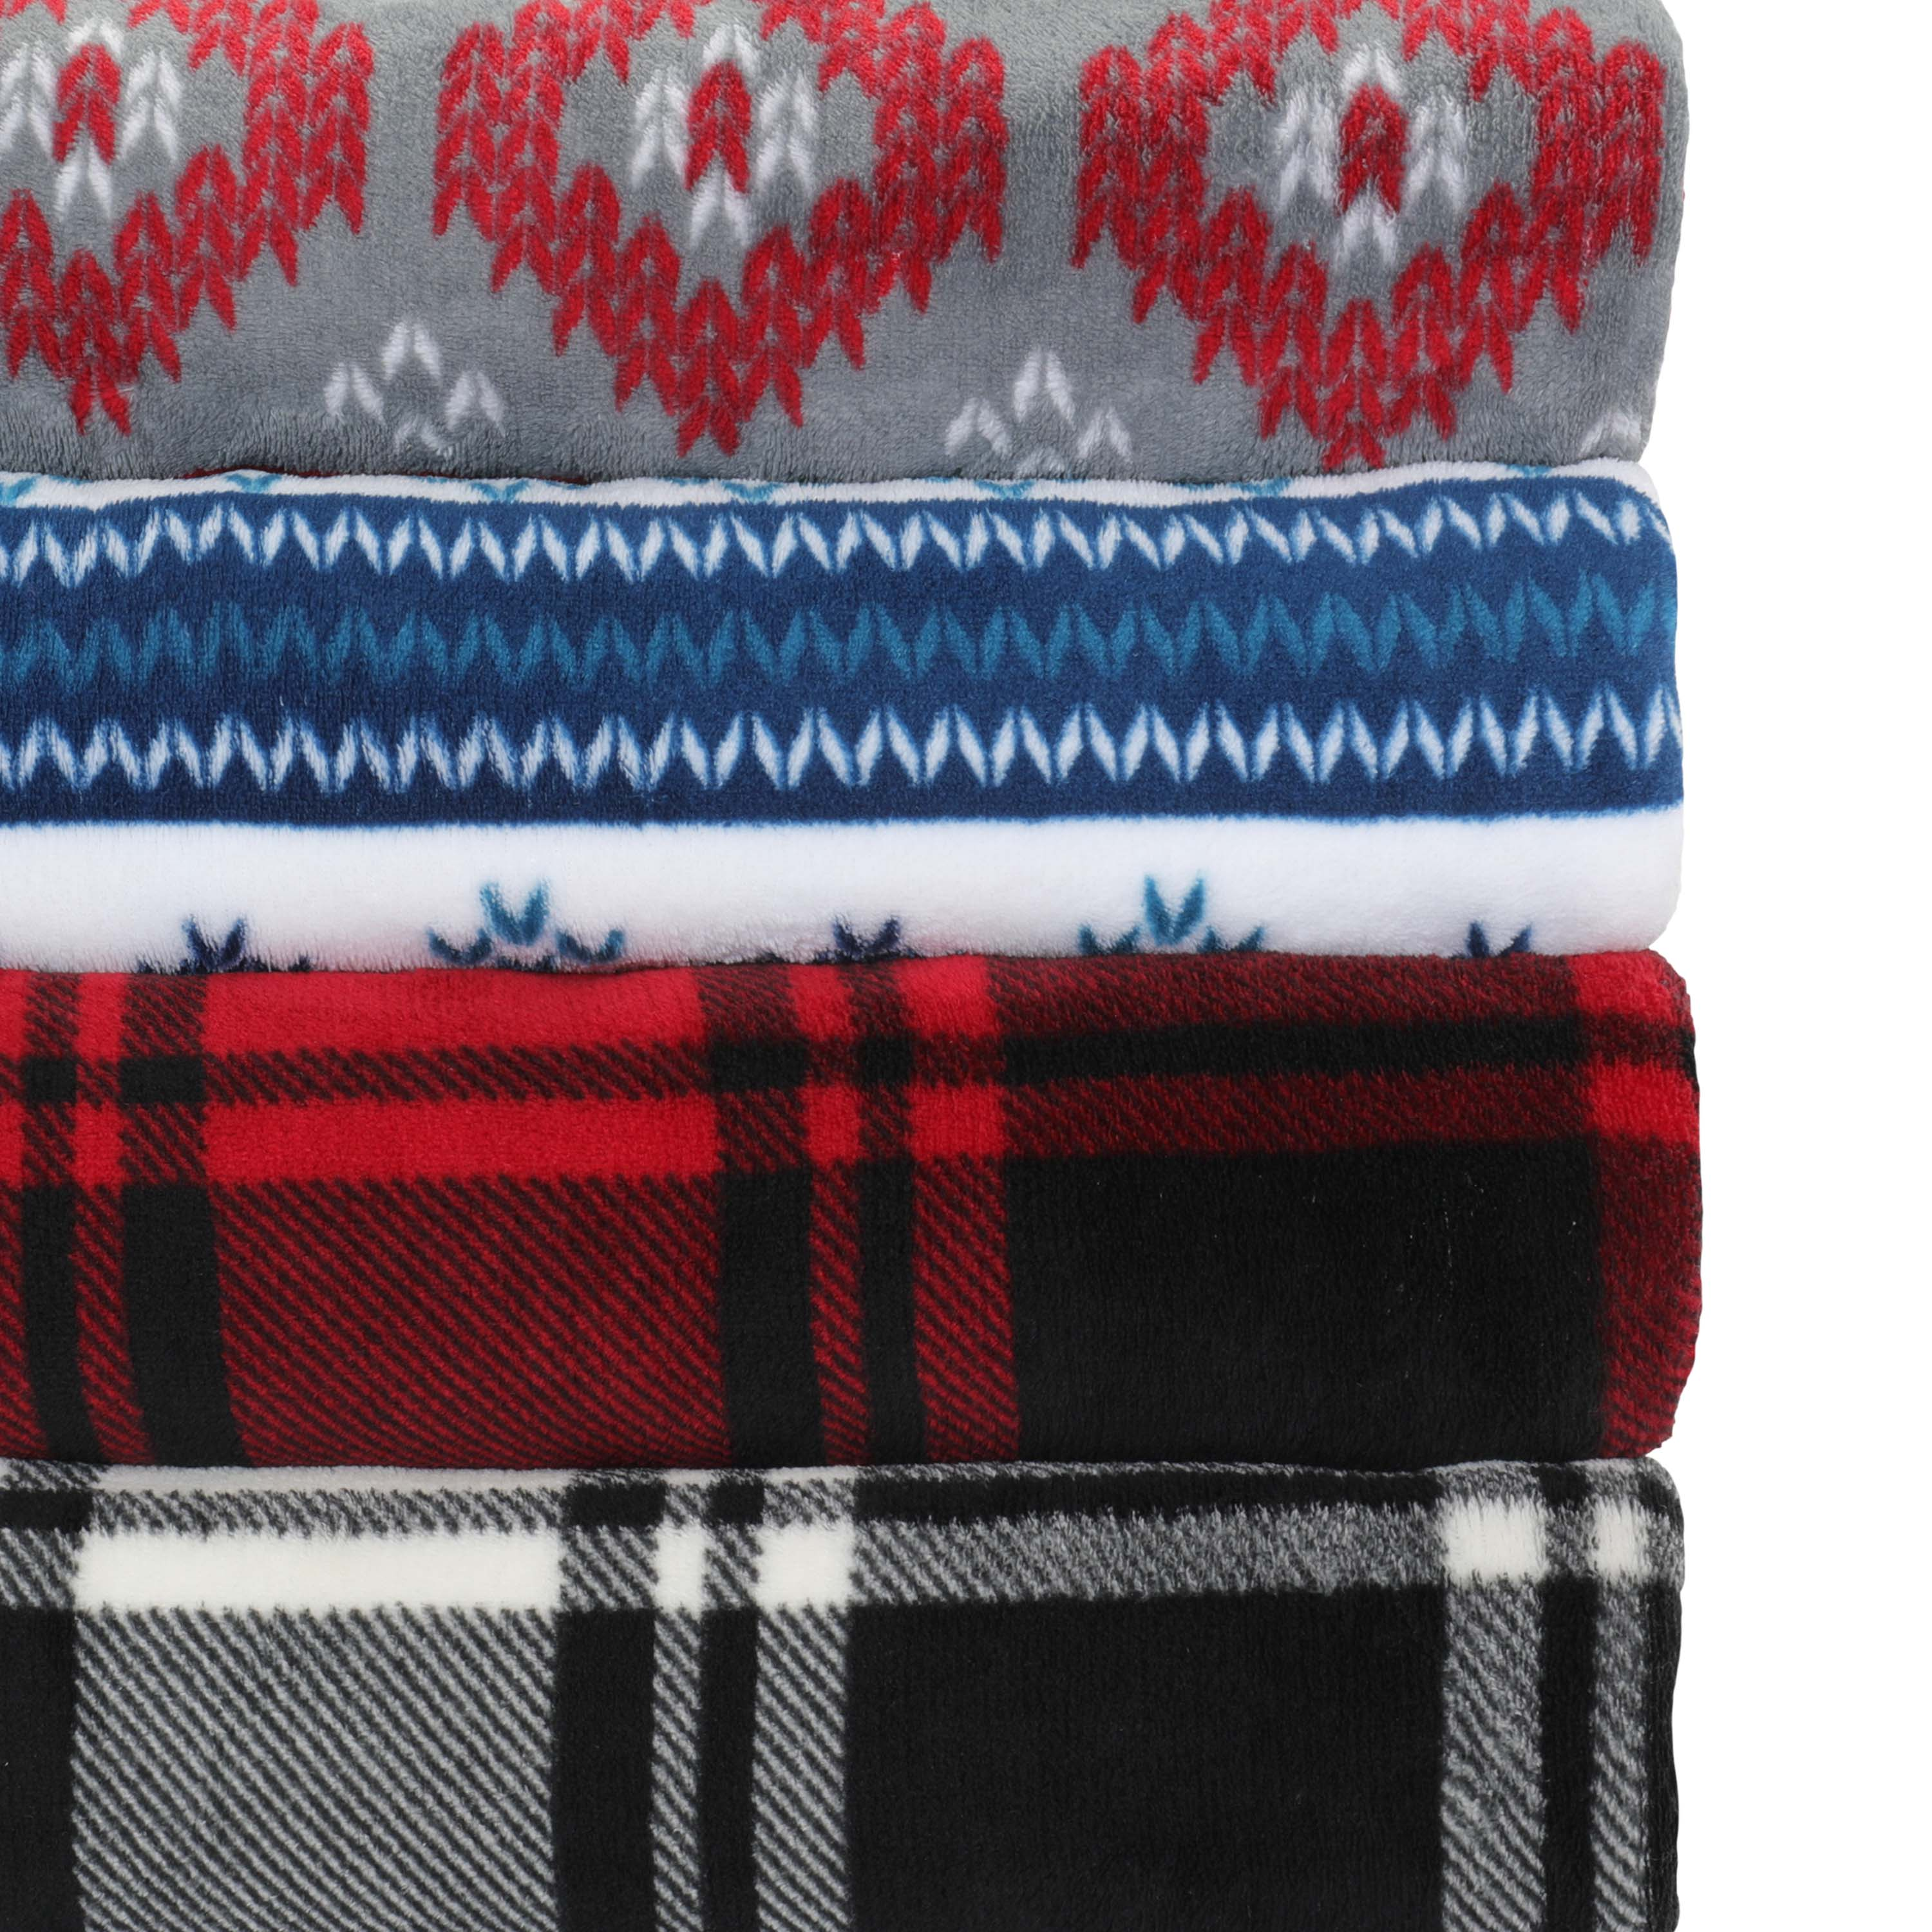 "Mainstays Giant Oversized Plush Throw Blanket, 60"" x 72"", Red Plaid $8.00 + ship"